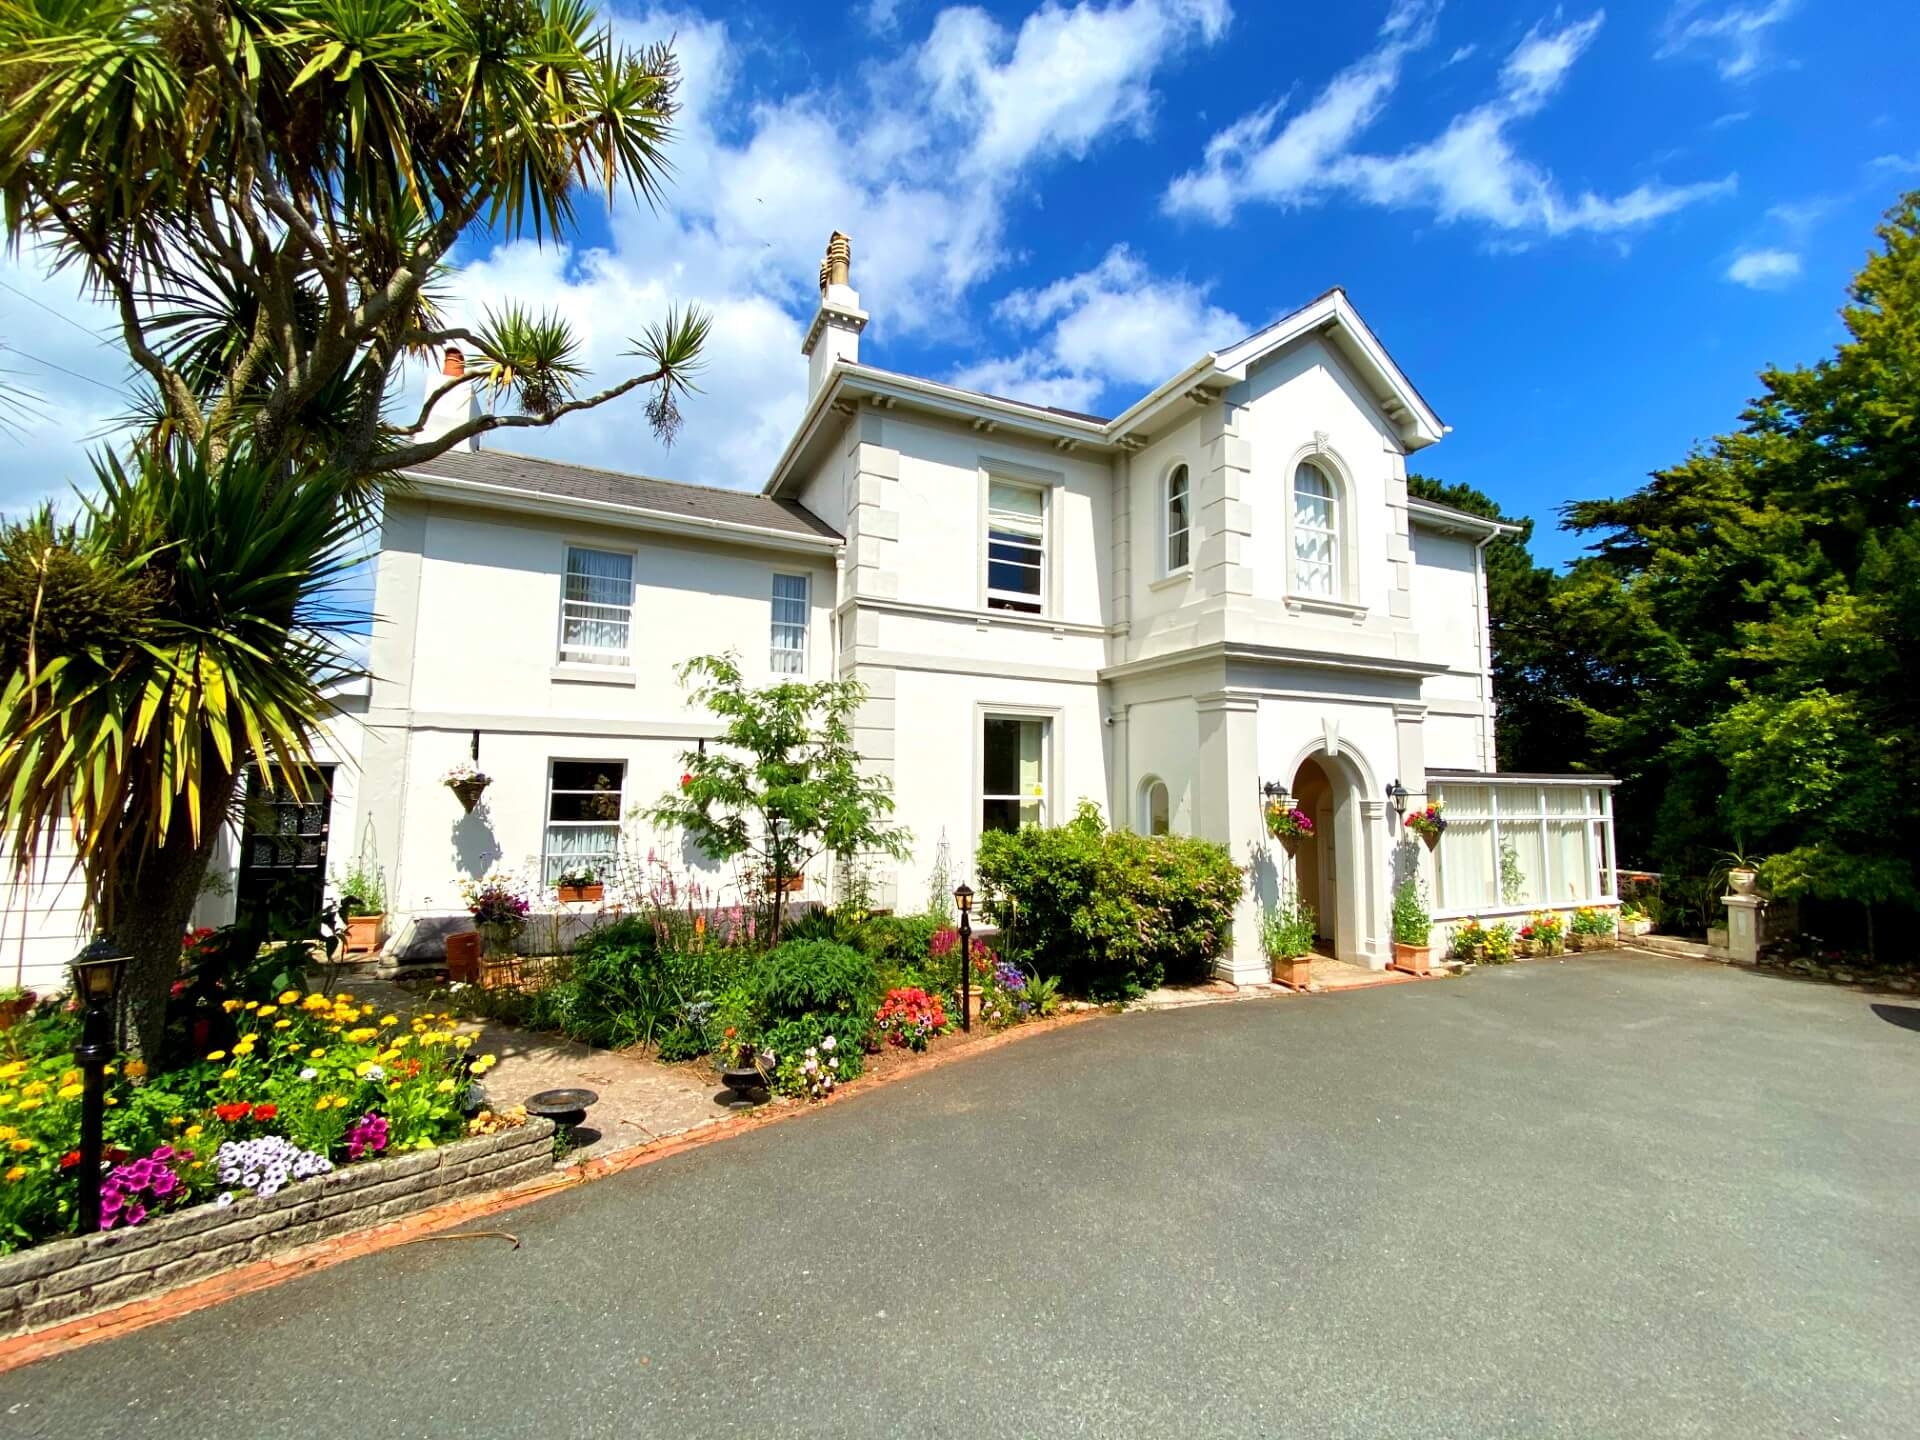 The Muntham Luxury Holiday Apartment and Town House - Dog Friendly Accommodation in Torquay